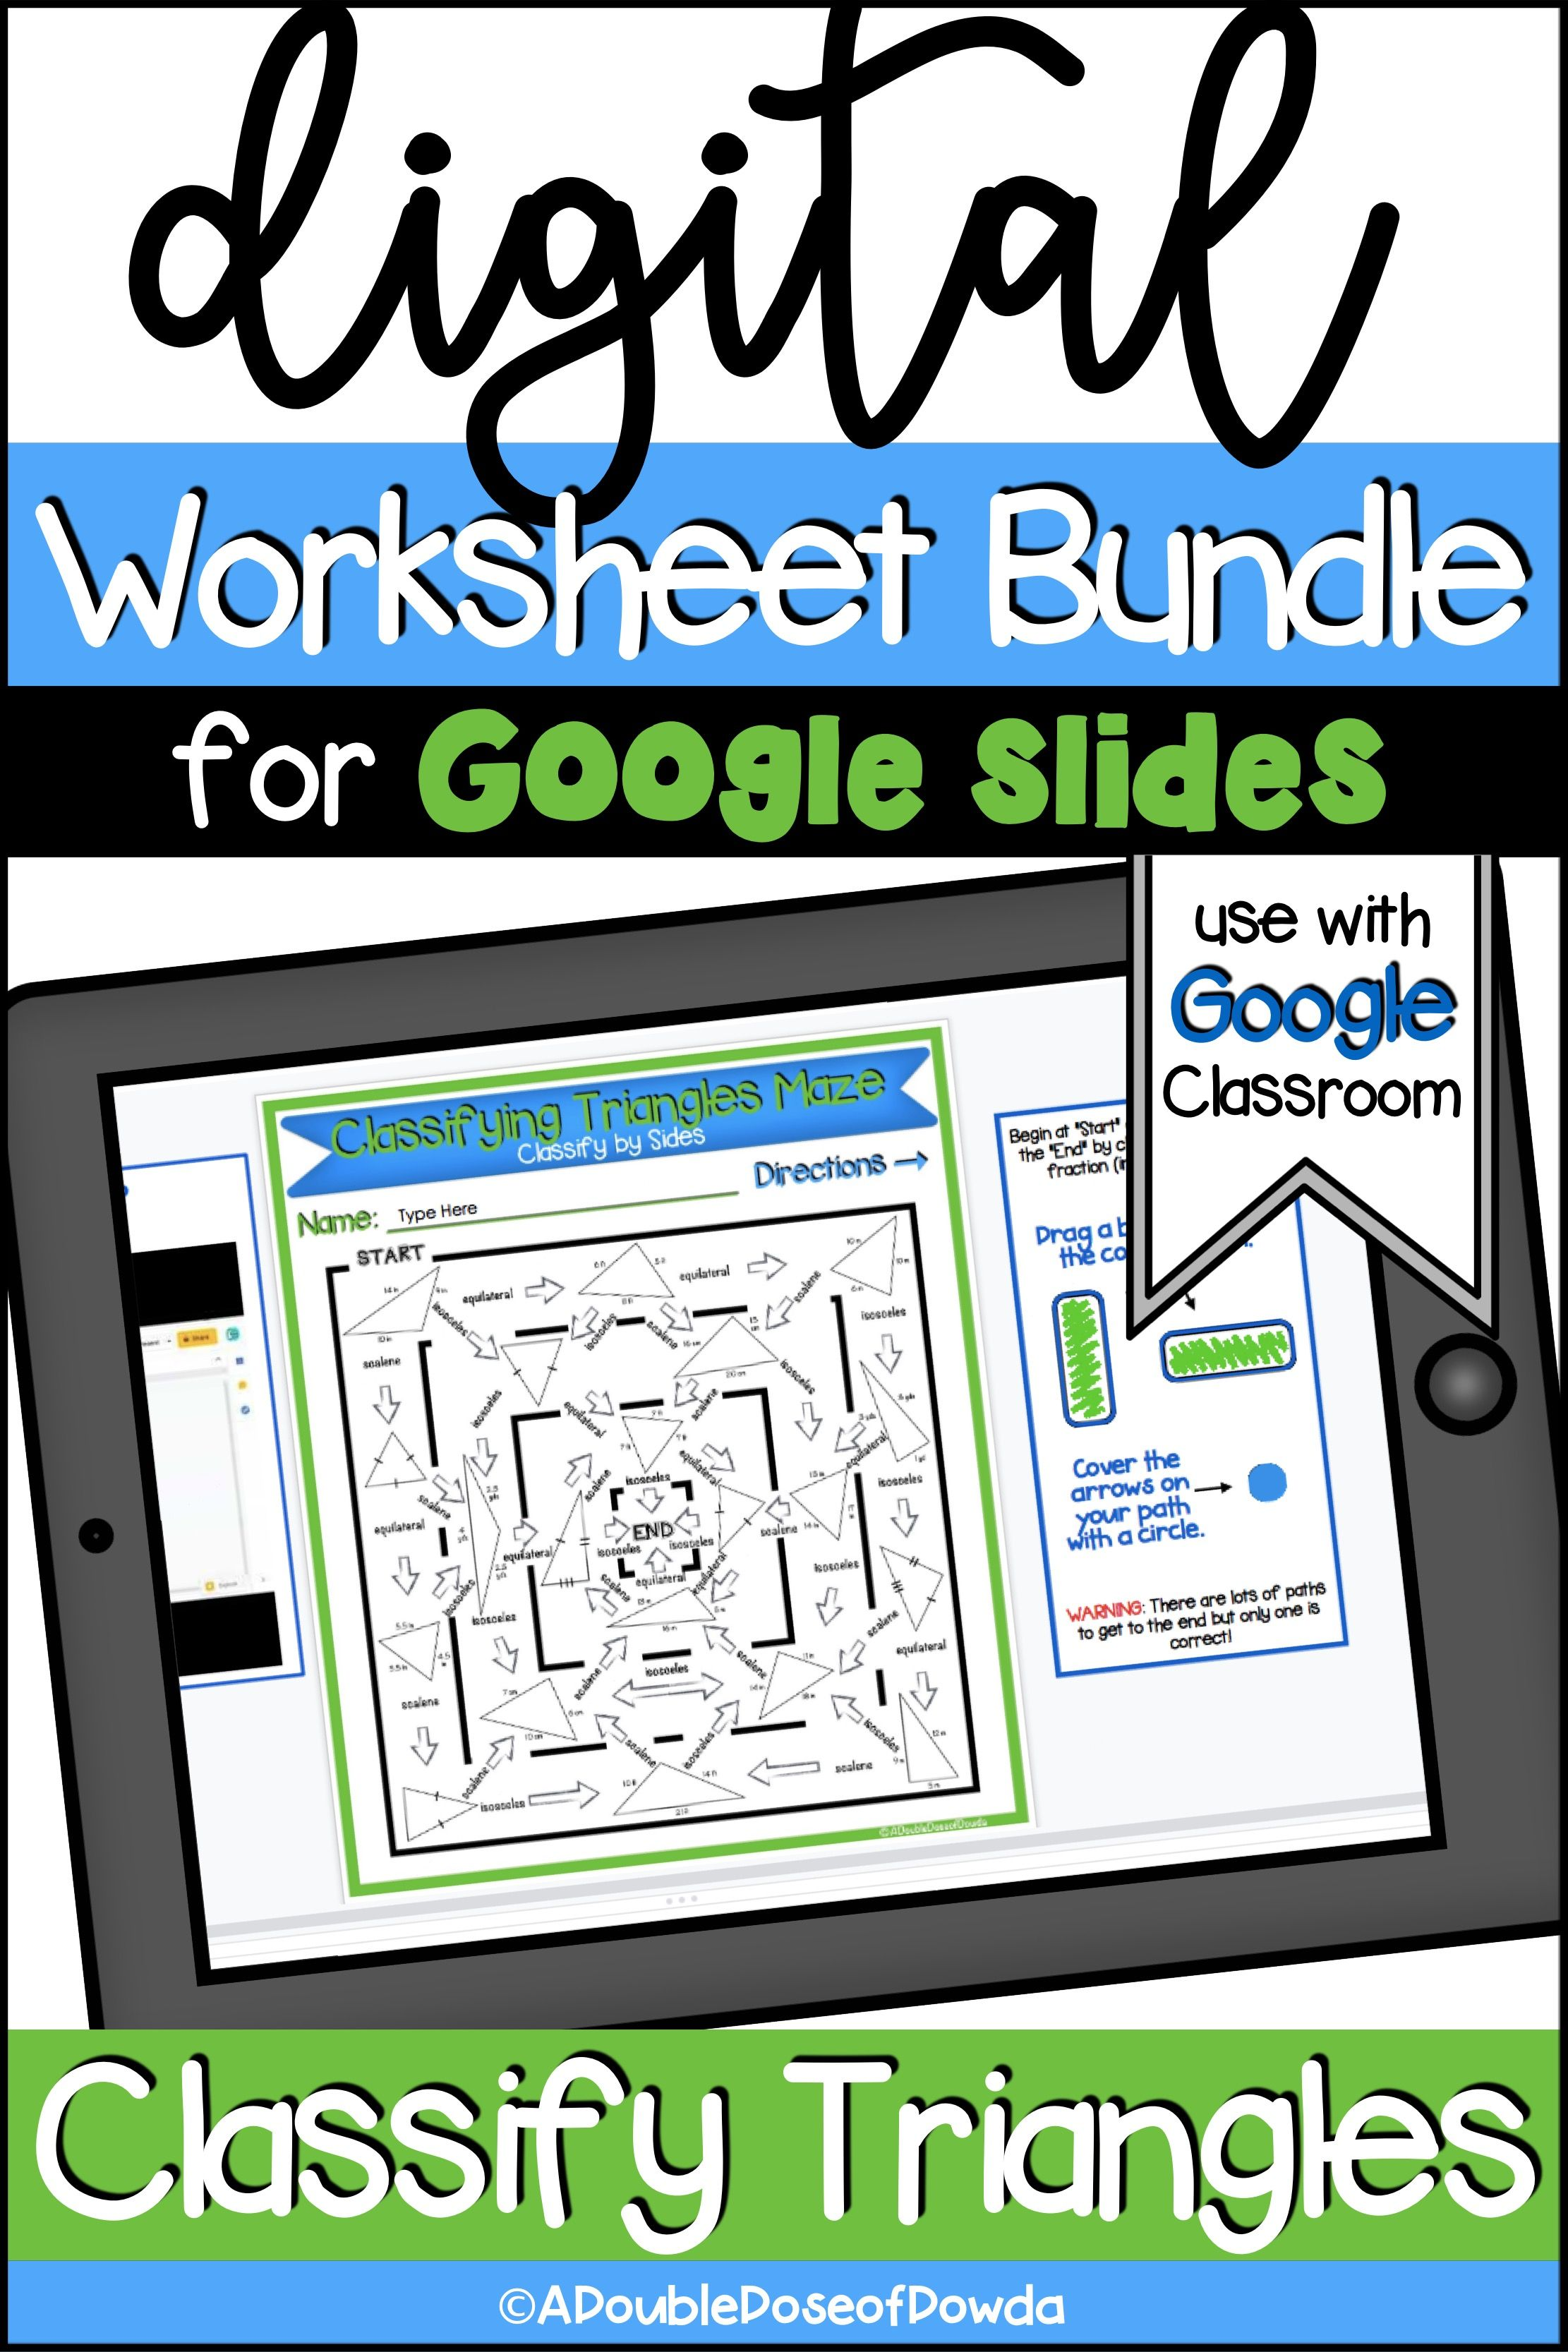 Classify Triangles Digital Worksheet Bundle For